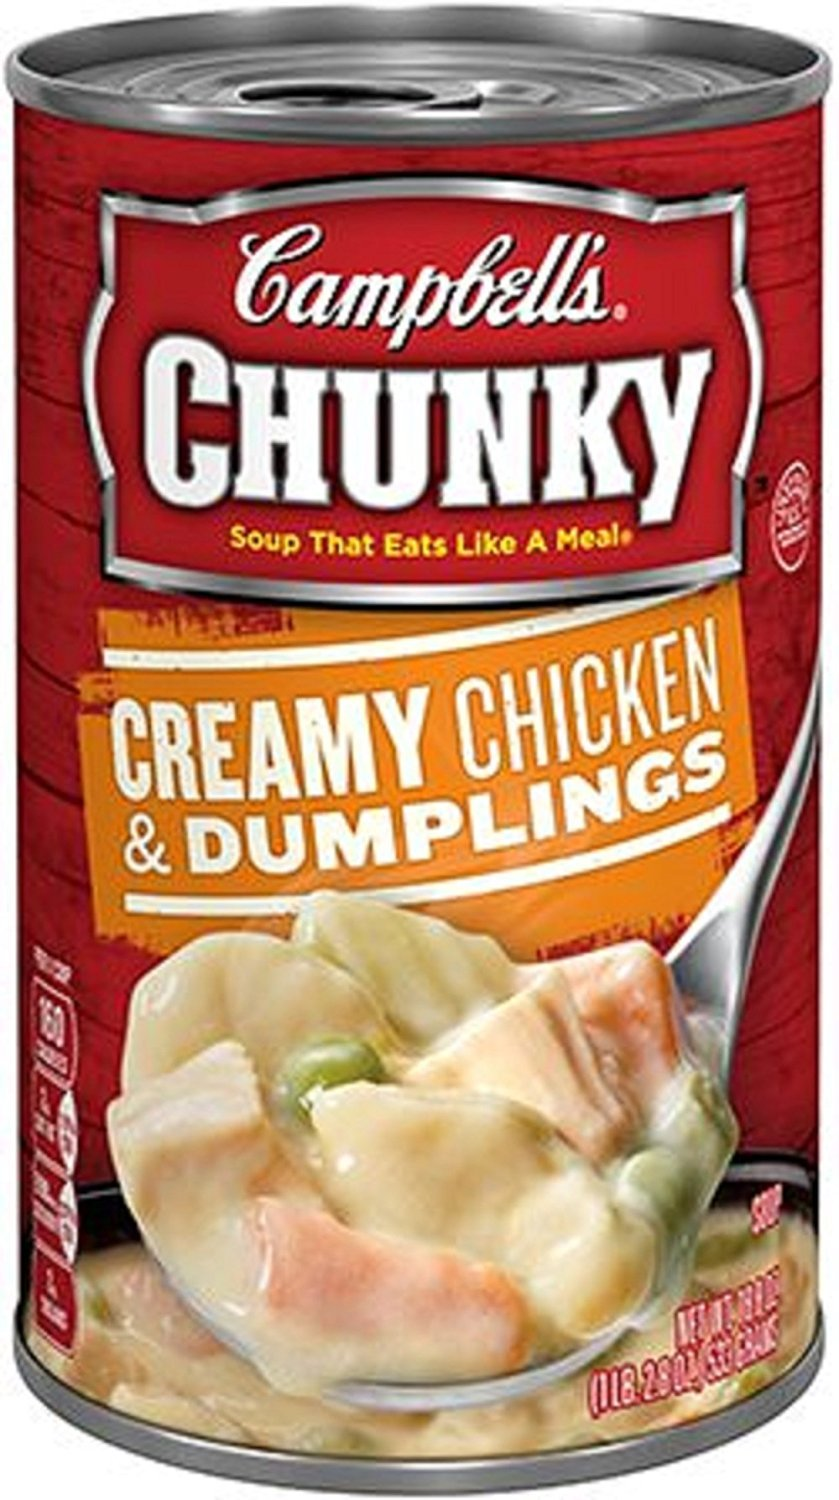 Campbell's Chunky Creamy Chicken and Dumpling Soup, 18.8-Ounce (Pack of 6)